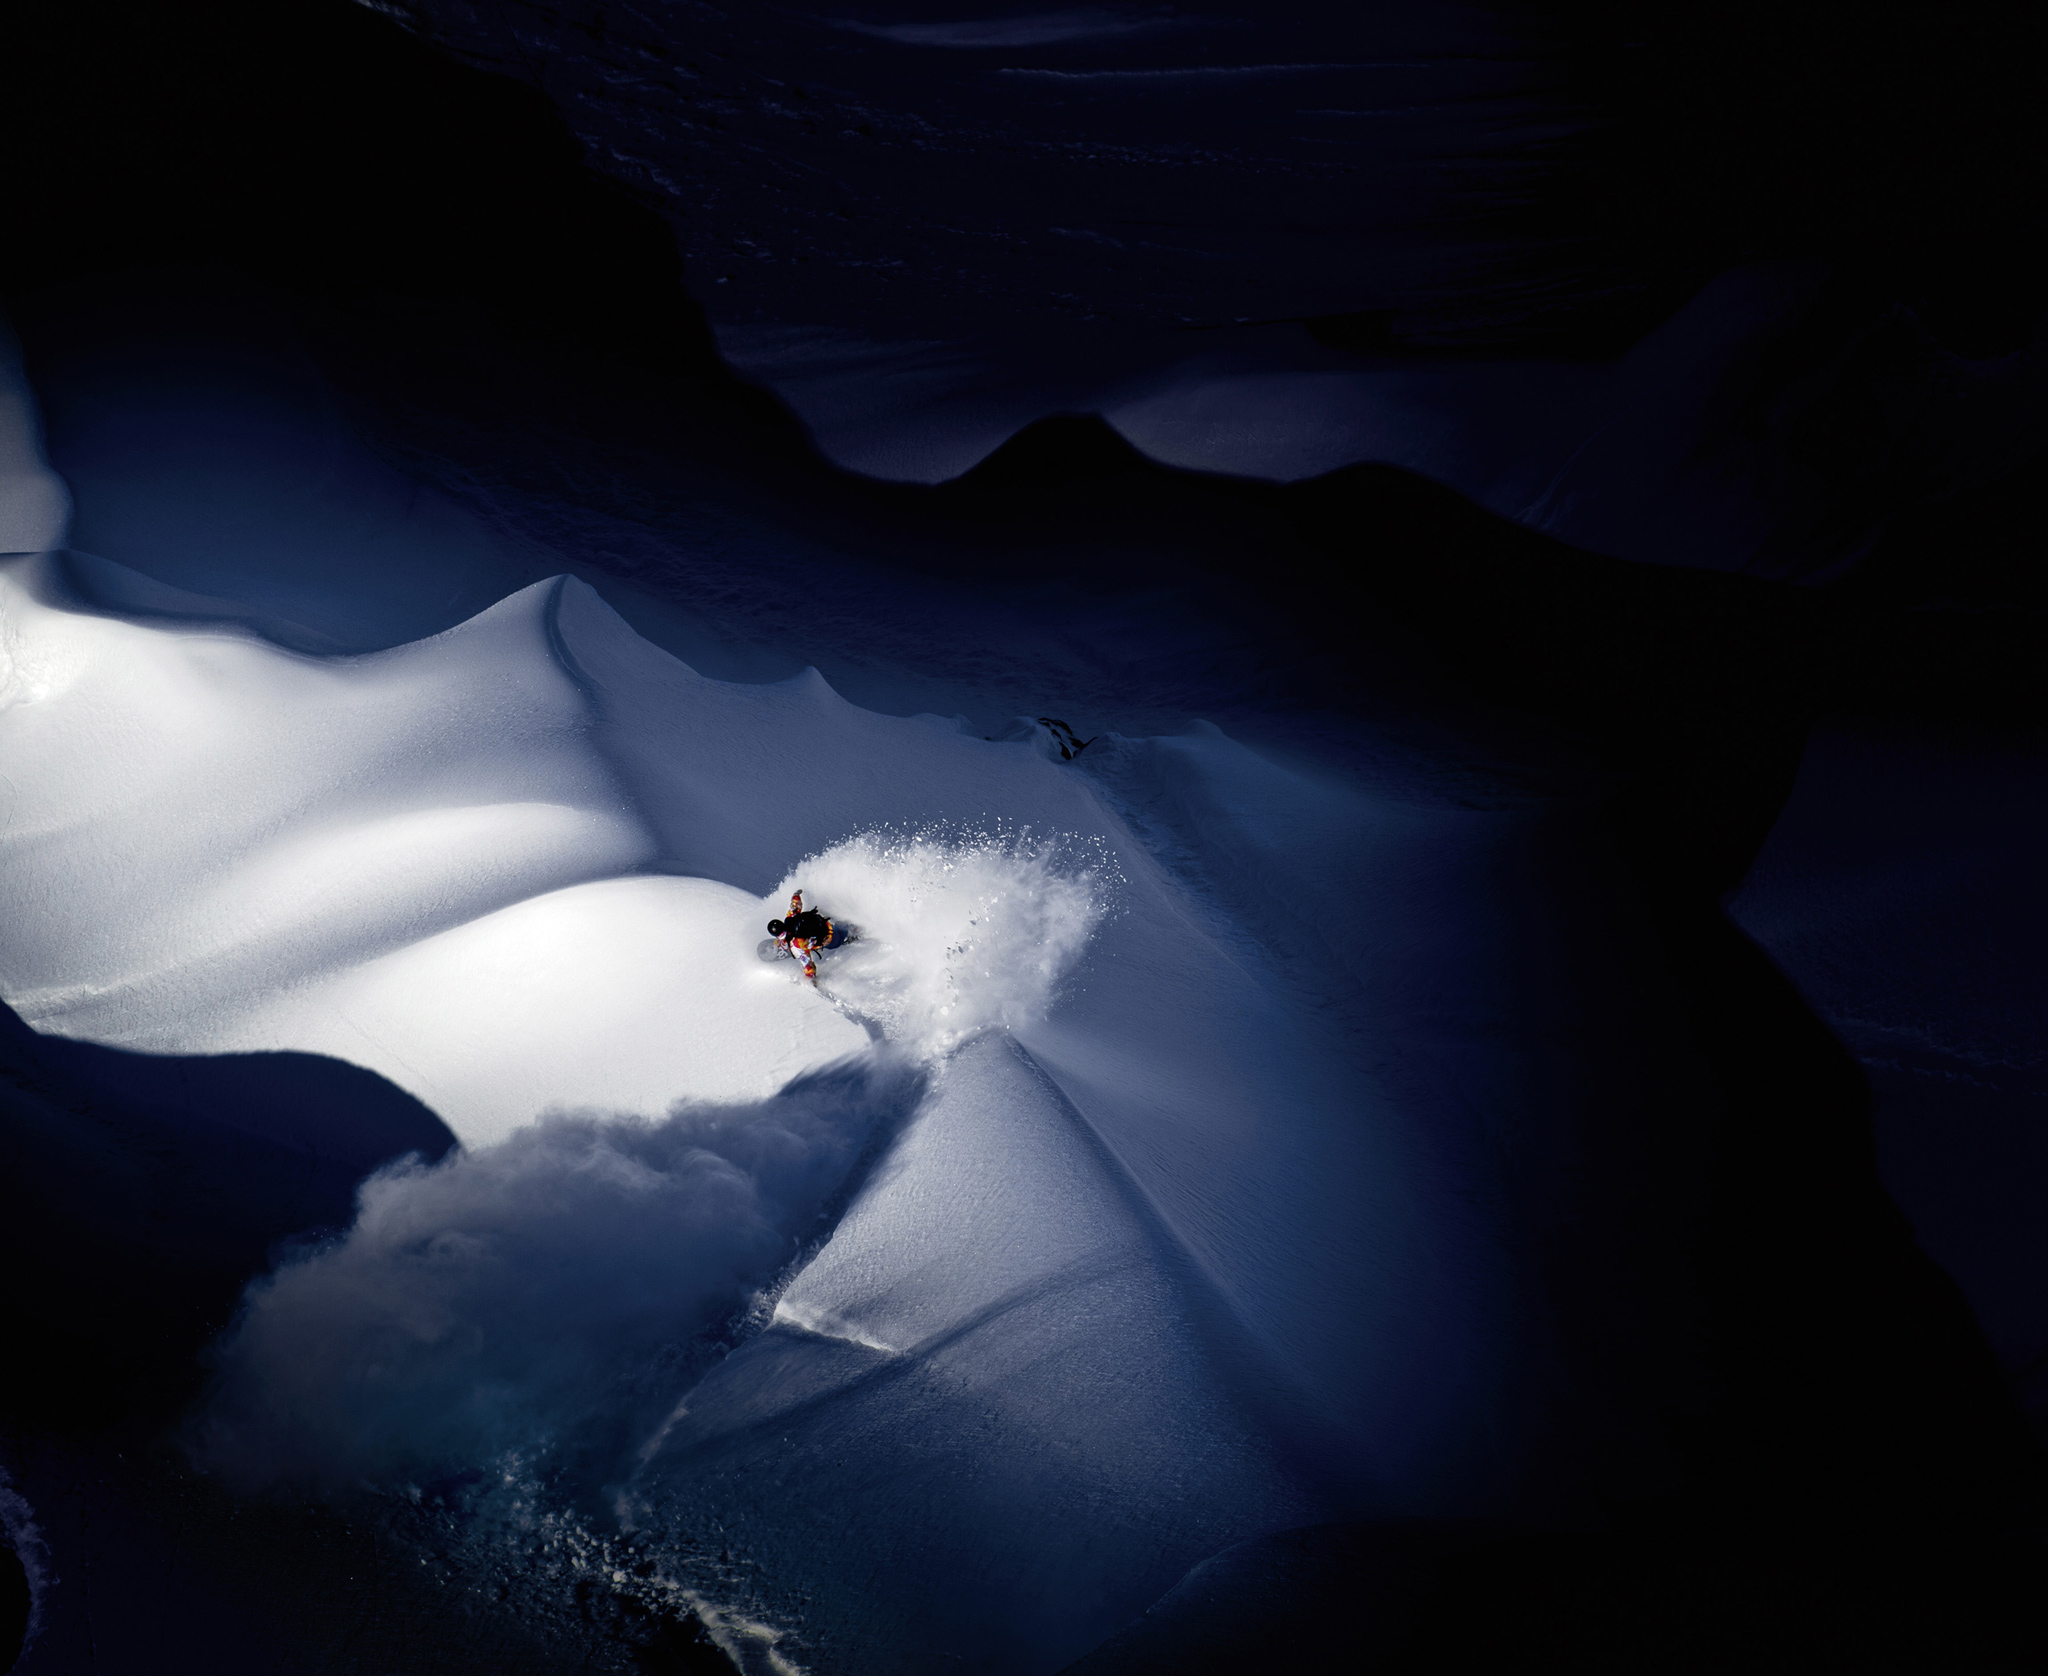 Scott Serfas: Illumination Winner